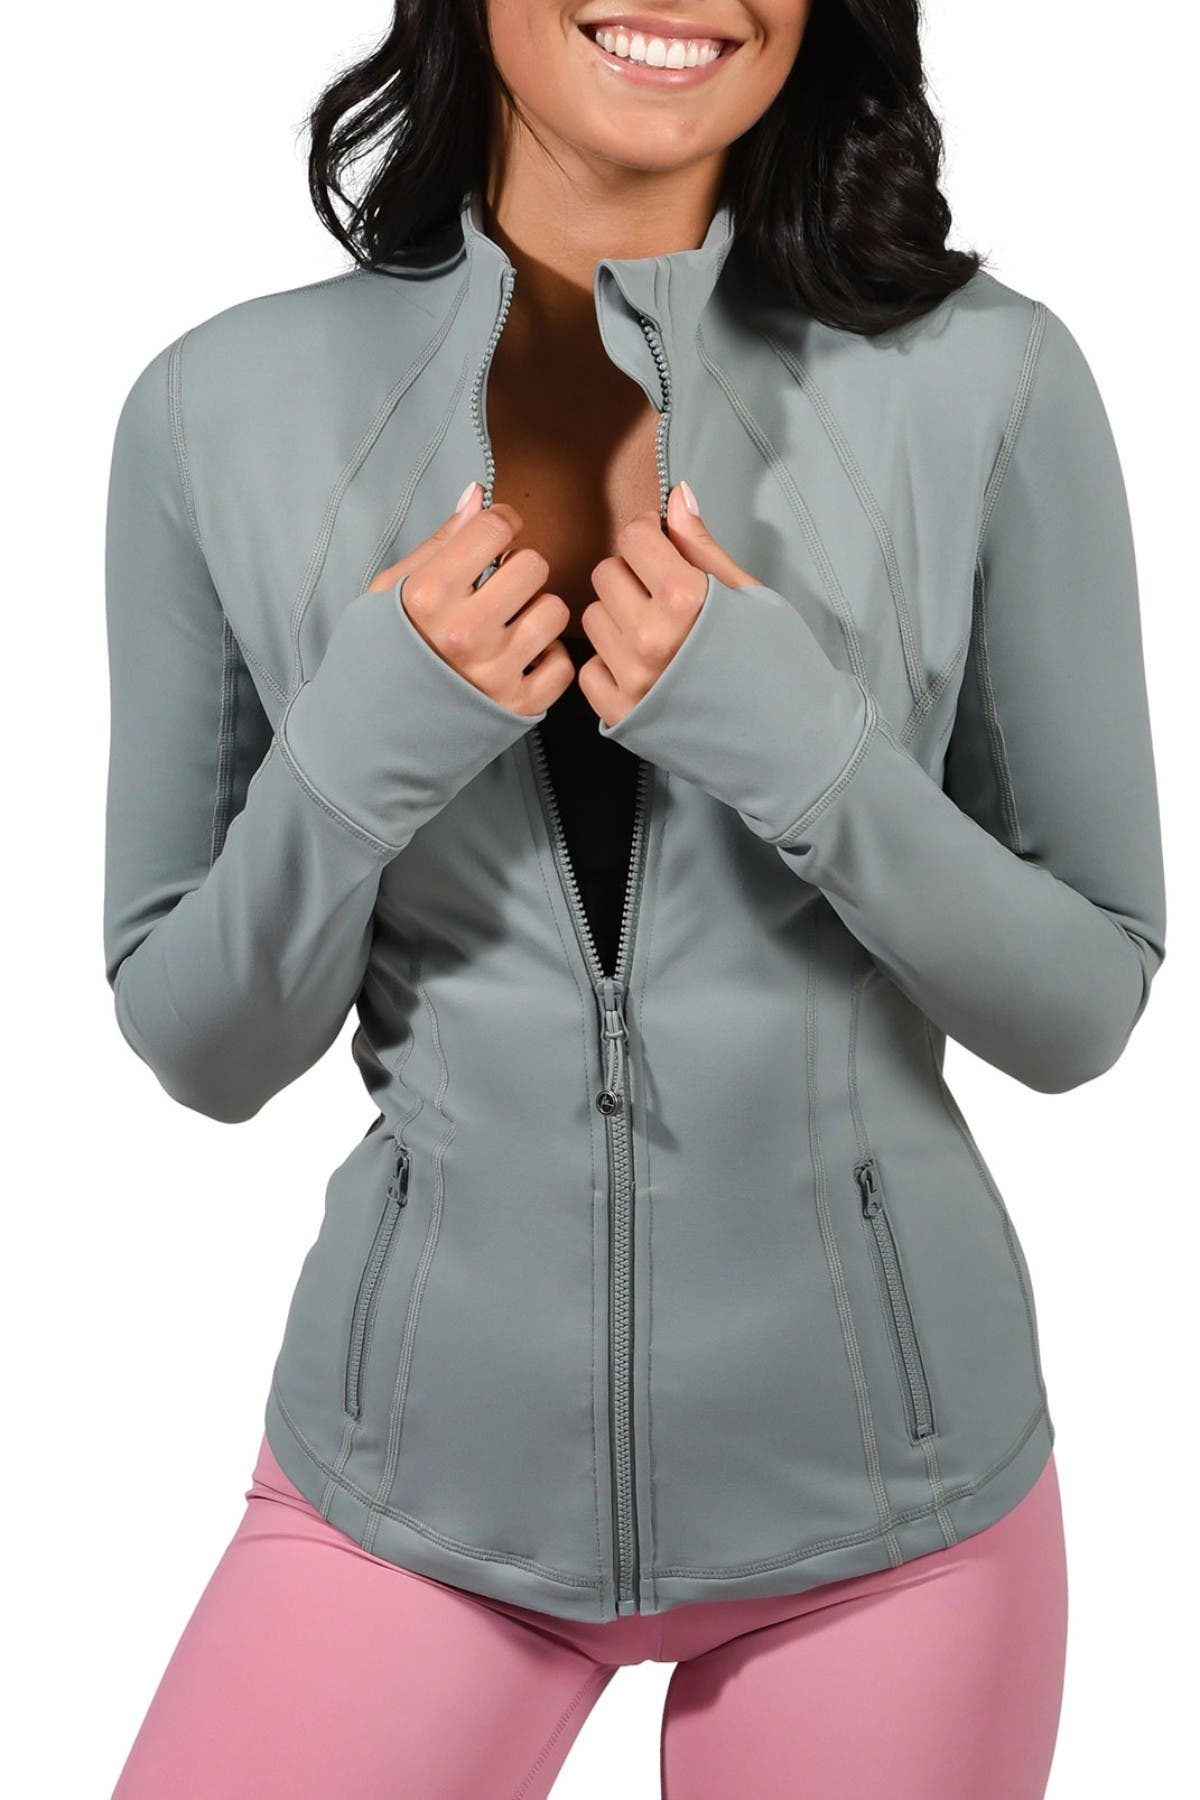 Image of 90 Degree By Reflex Full Zip Long Sleeve Jacket